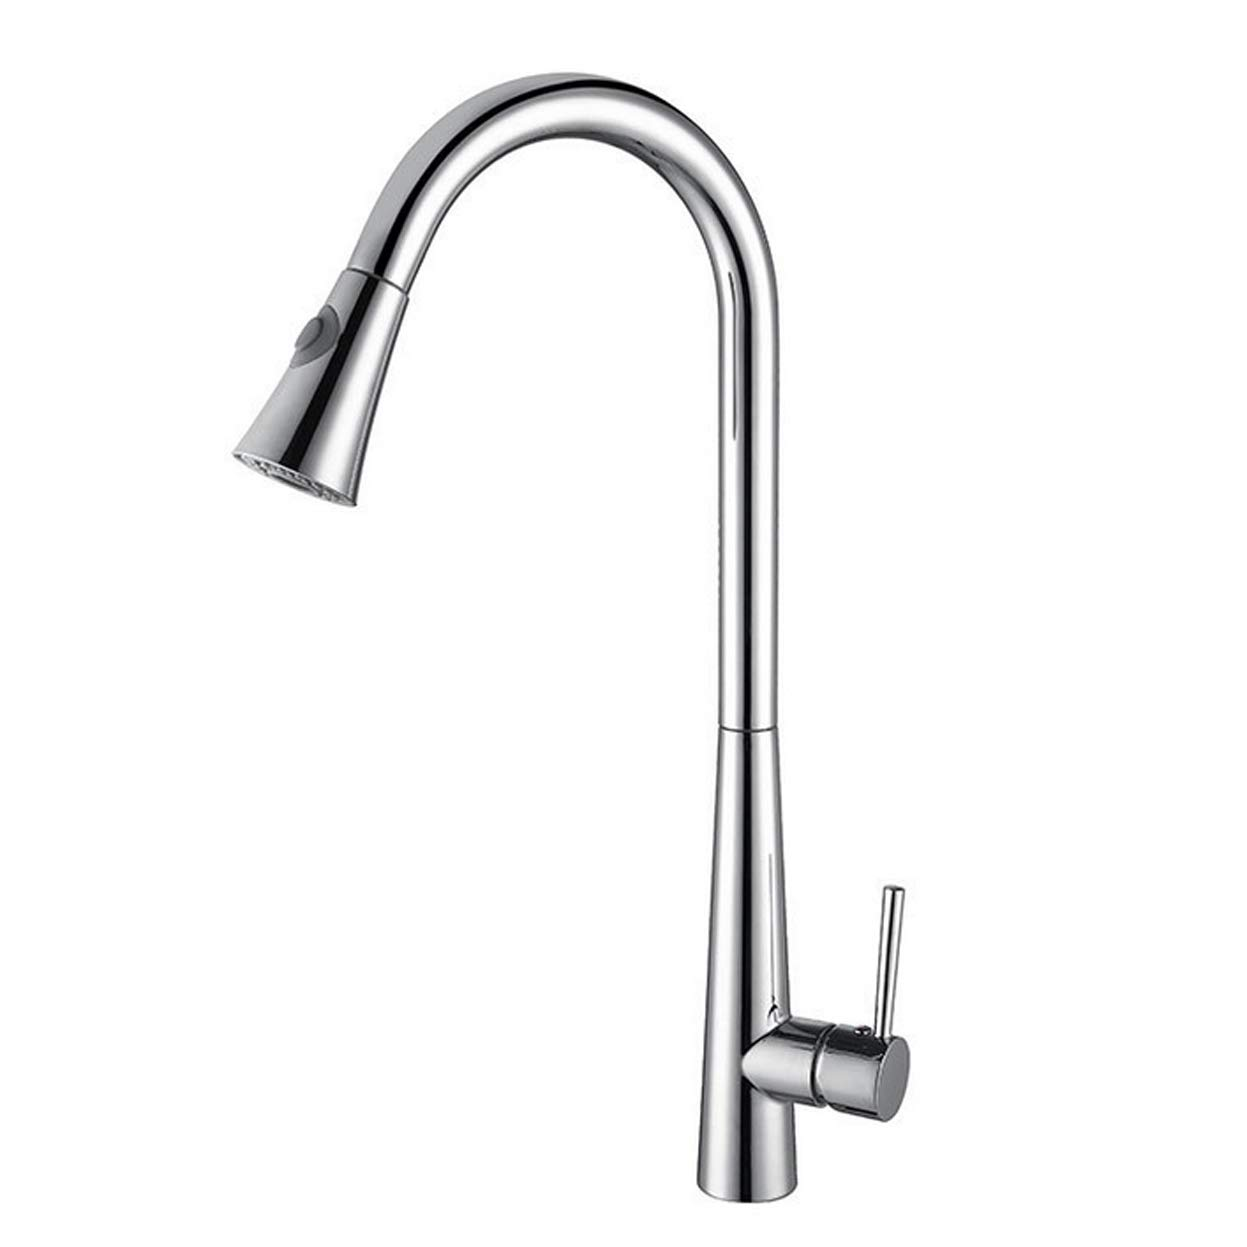 Chrome Kitchen Faucet Pull-Down Universal Single Hole greenical Telescopic redary Drawing Zinc Copper Hot and Cold Adjustment Sink Water-tap,Brushed